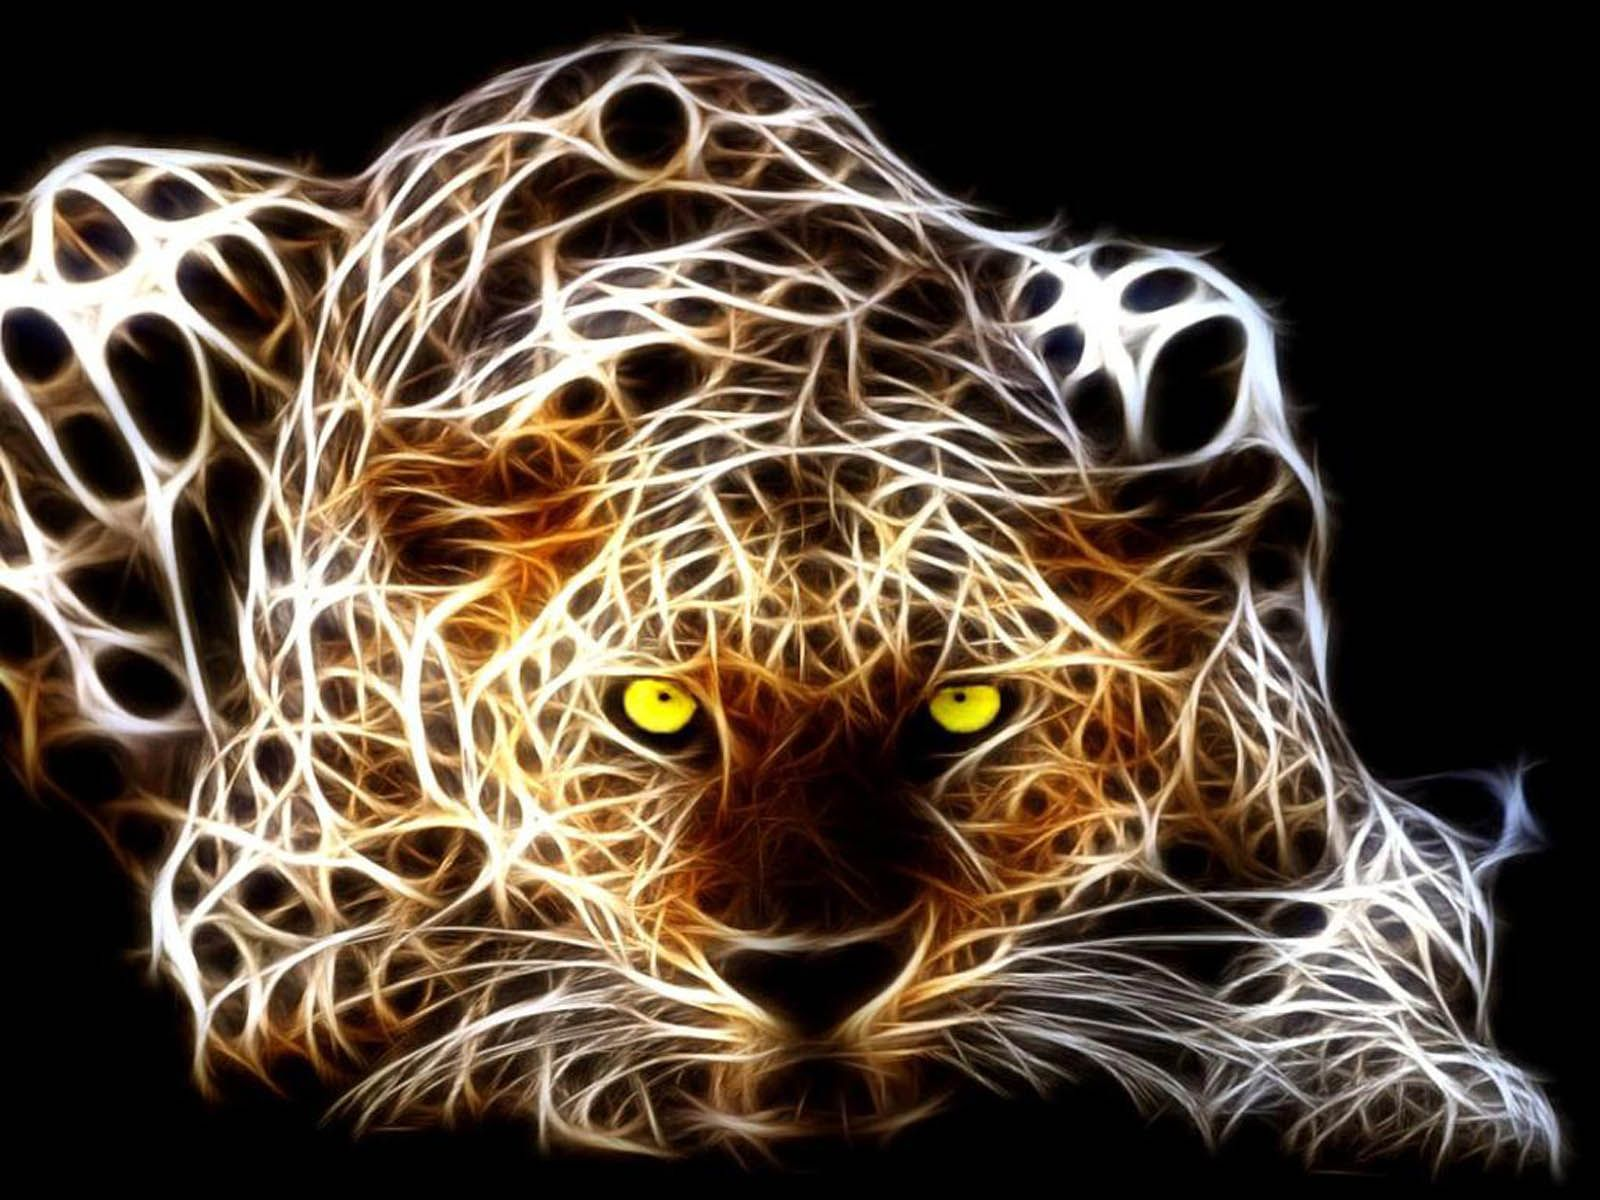 3d tiger wallpaper | tag: tiger 3d wallpapers, images, photos